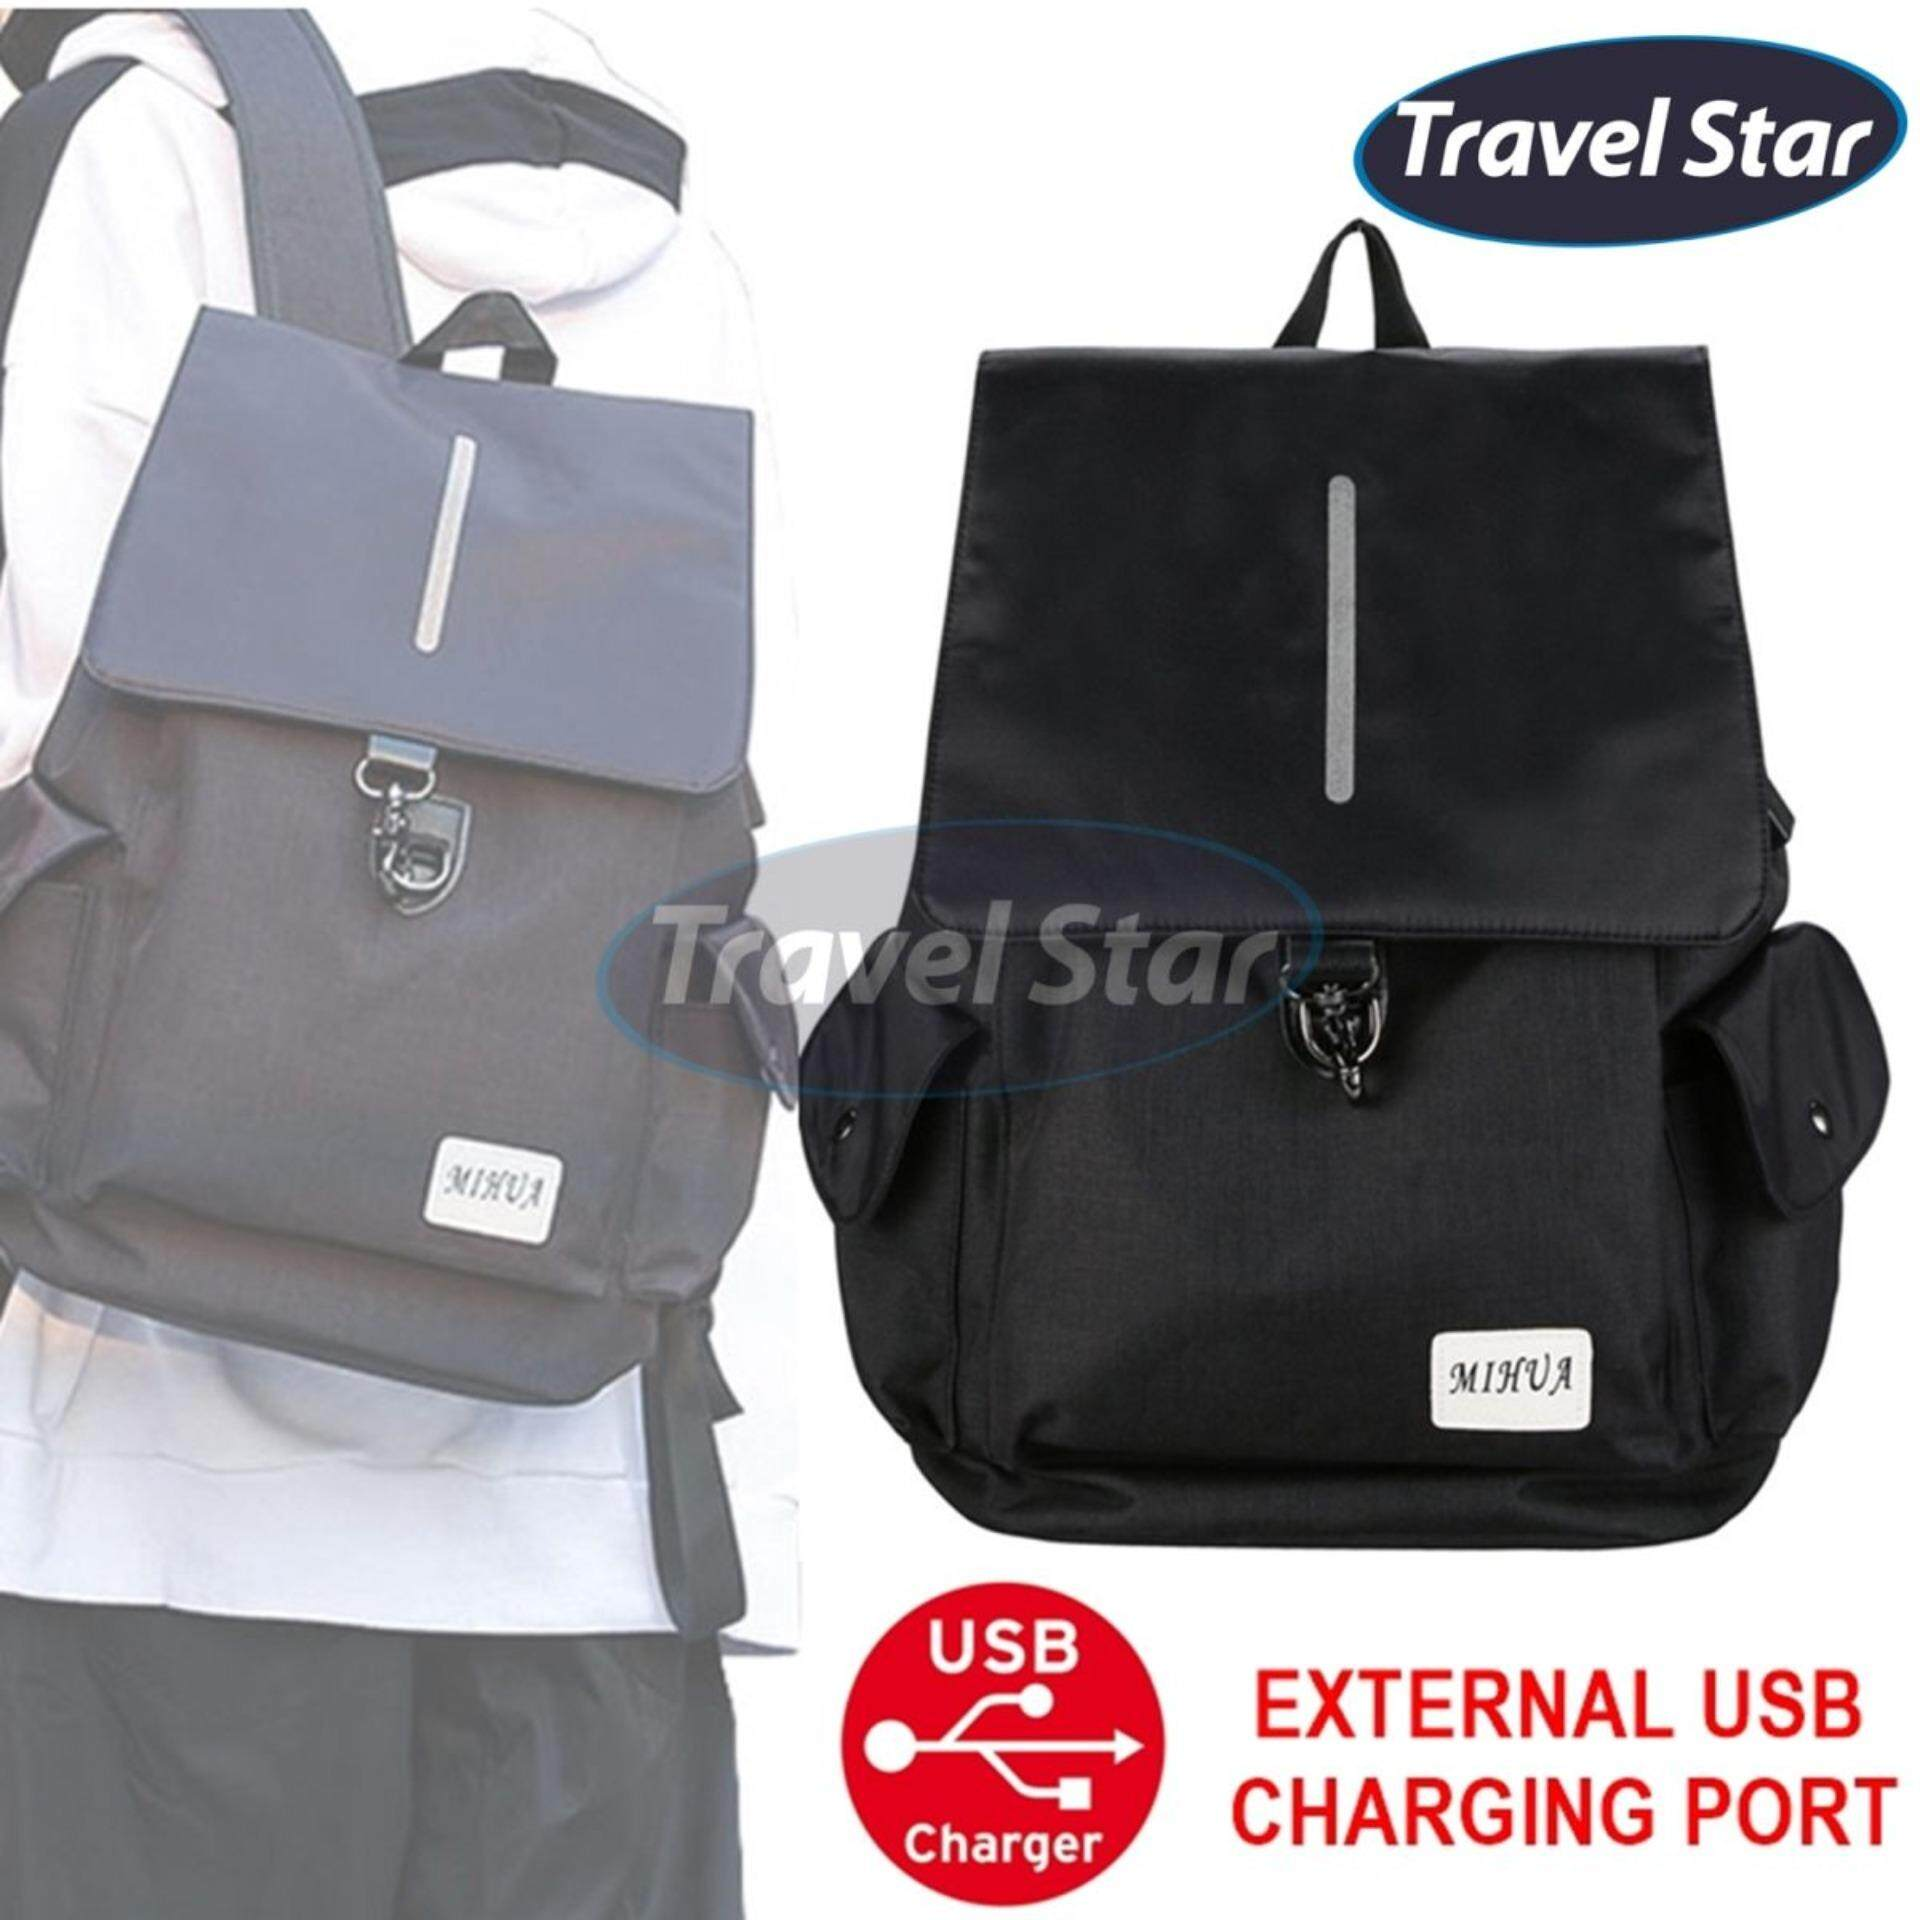 Travel Star 313 Korean Style Premium Double Strap Laptop Backpack with External Charging USB Port- Black